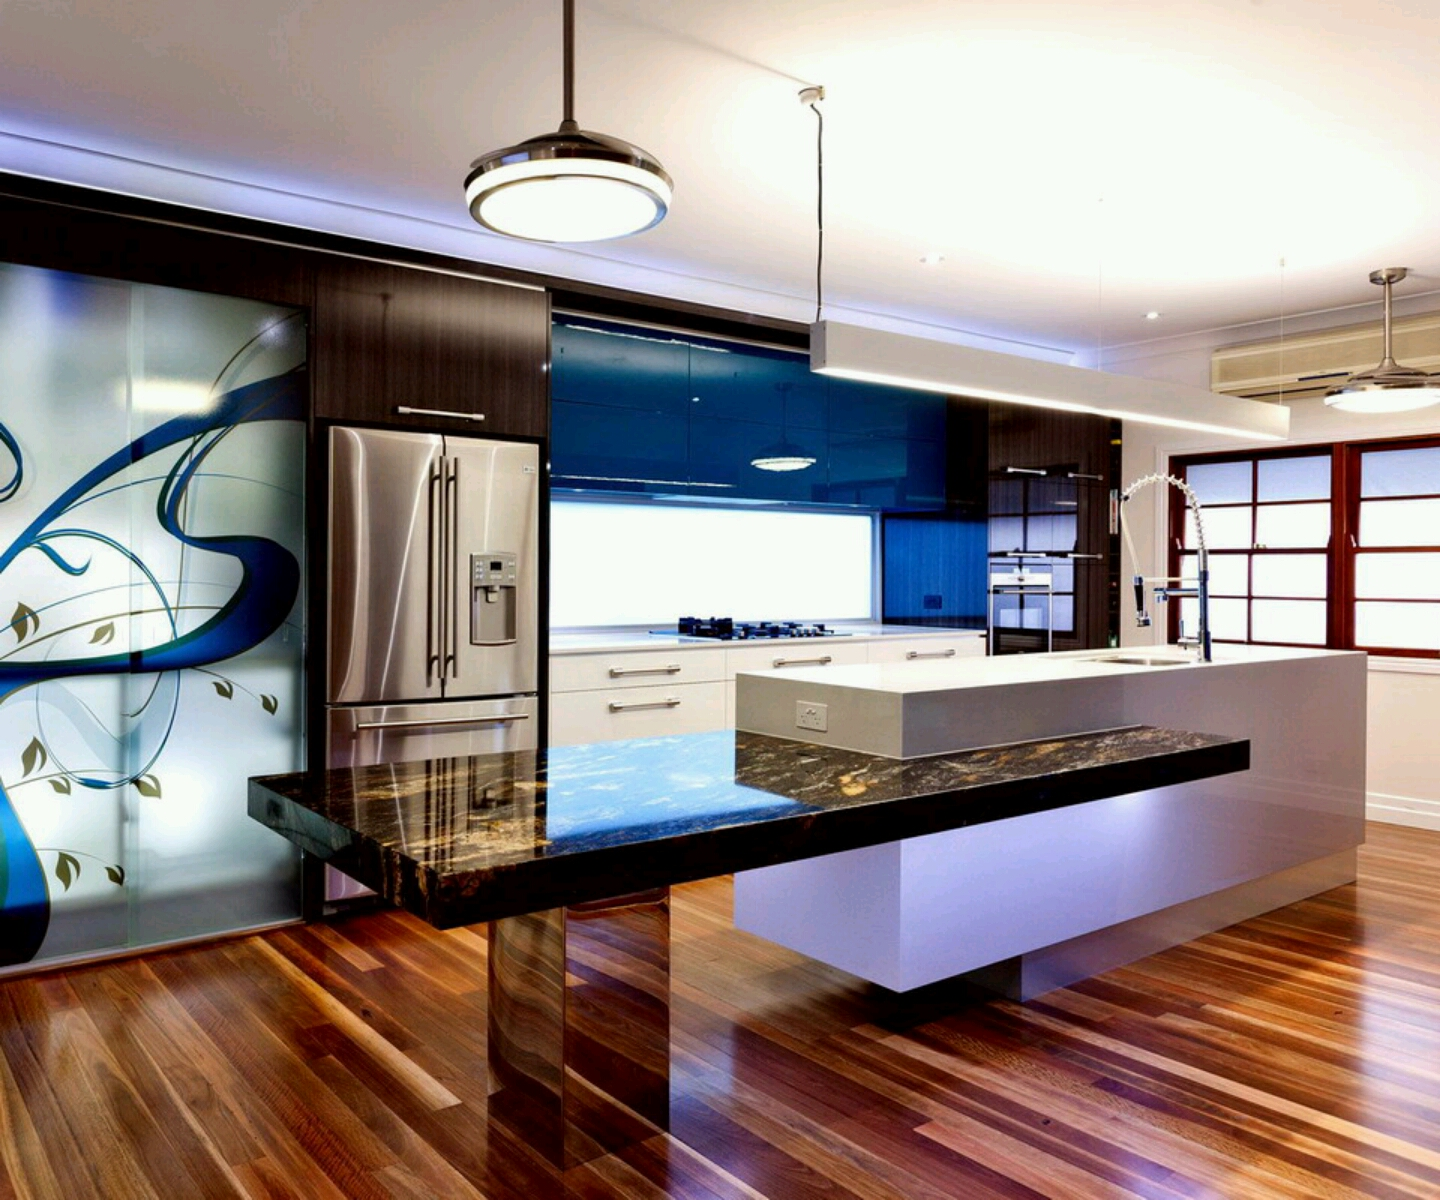 Ultra modern kitchen designs ideas new home designs for Home kitchen design